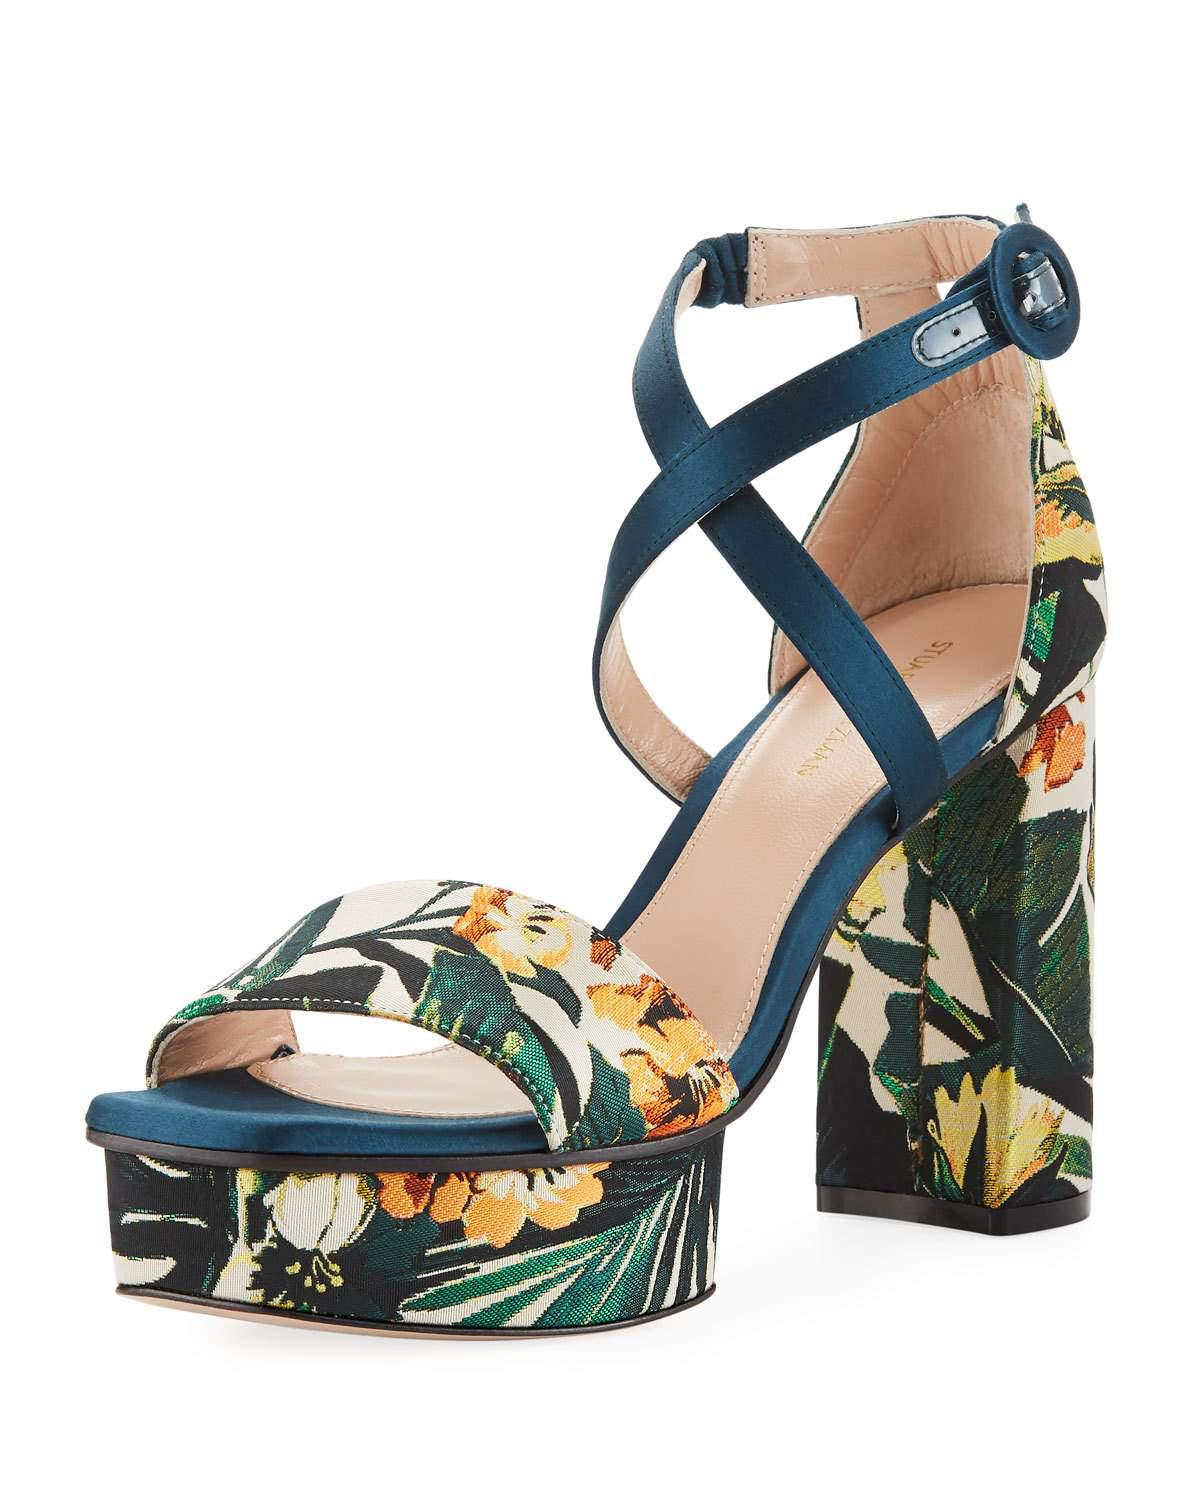 Carla sandals with floral print Stuart Weitzman 2018 Newest Cheap Price Footlocker 3JlGIQOhT